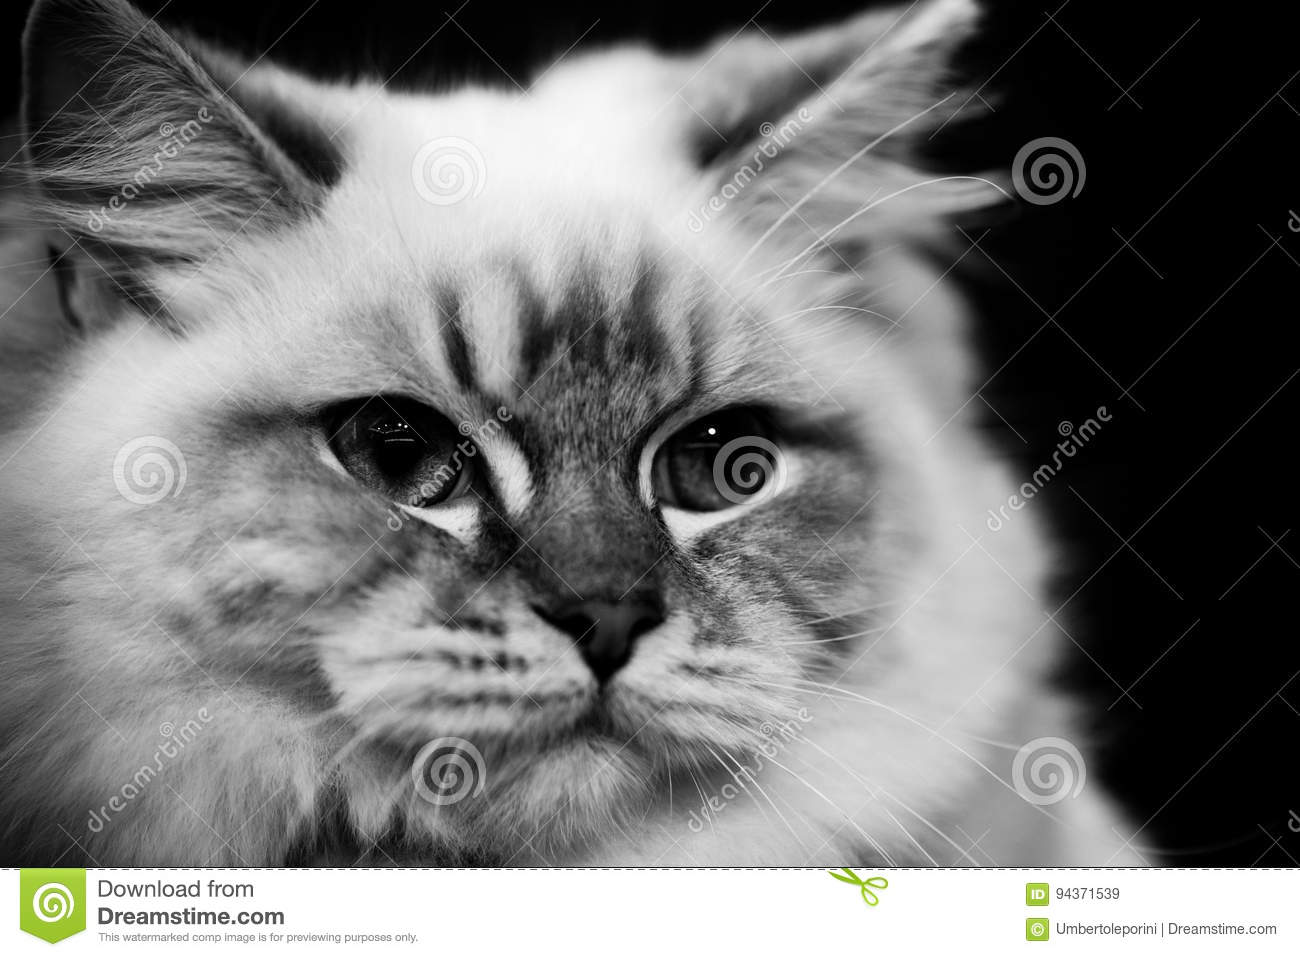 Cute burmese cat black and white animals portraits